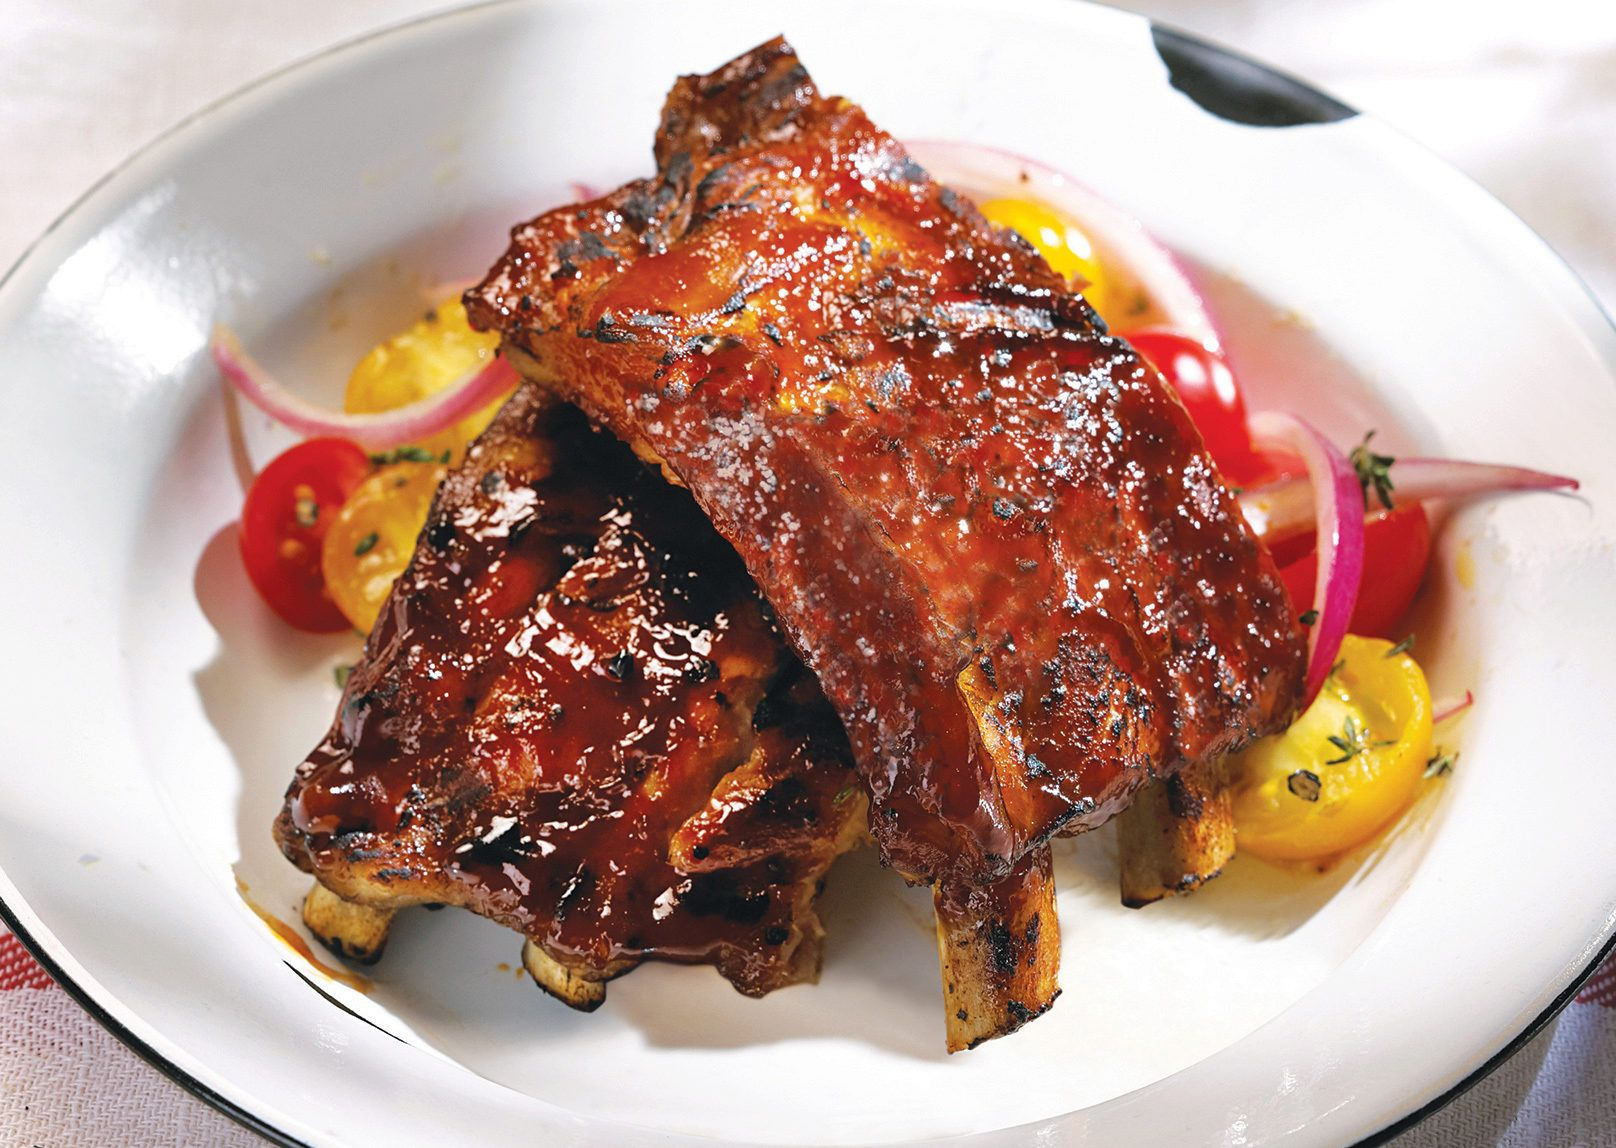 At your next dinner party, this Ultimate Pork Back Ribs recipe will steal the show. This easy to follow pork rib recipe will never disappoint! Get the recipe from Sobeys.